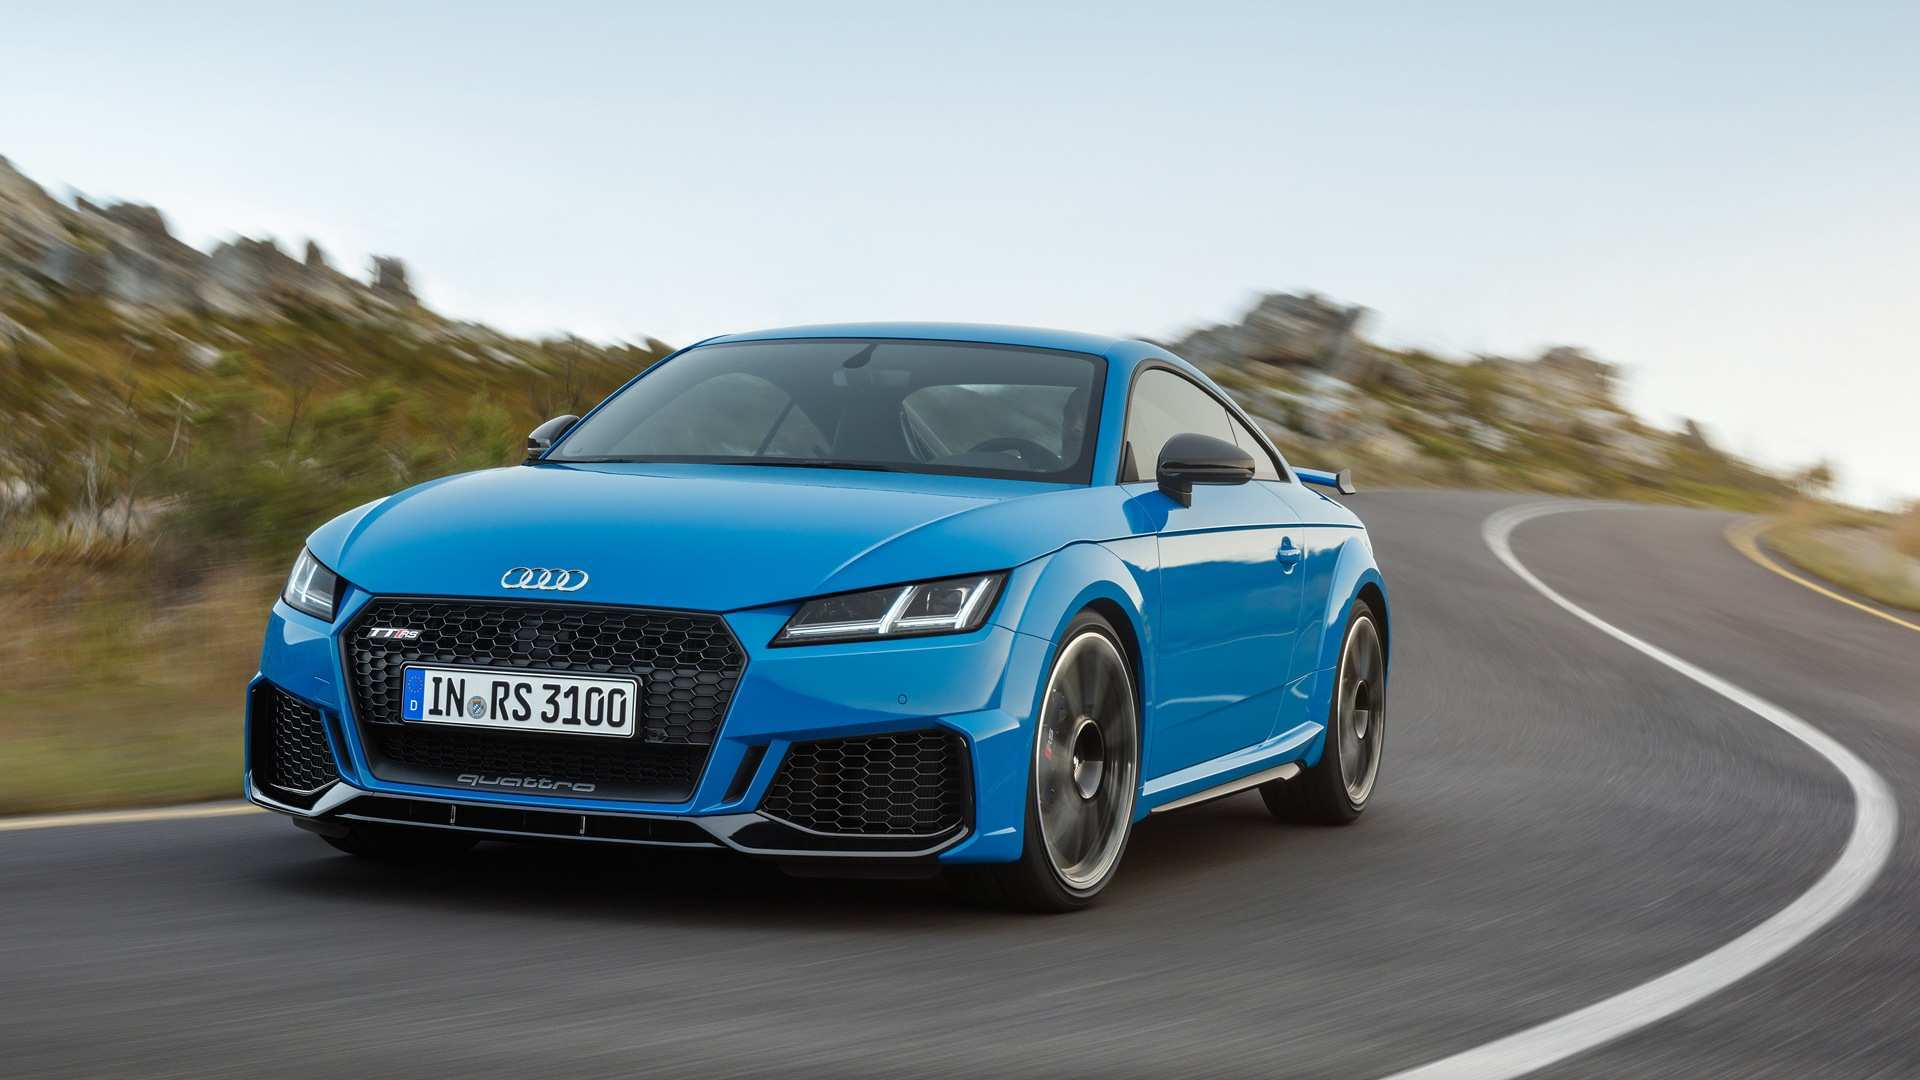 73 The Audi Tt Coupe 2020 History by Audi Tt Coupe 2020